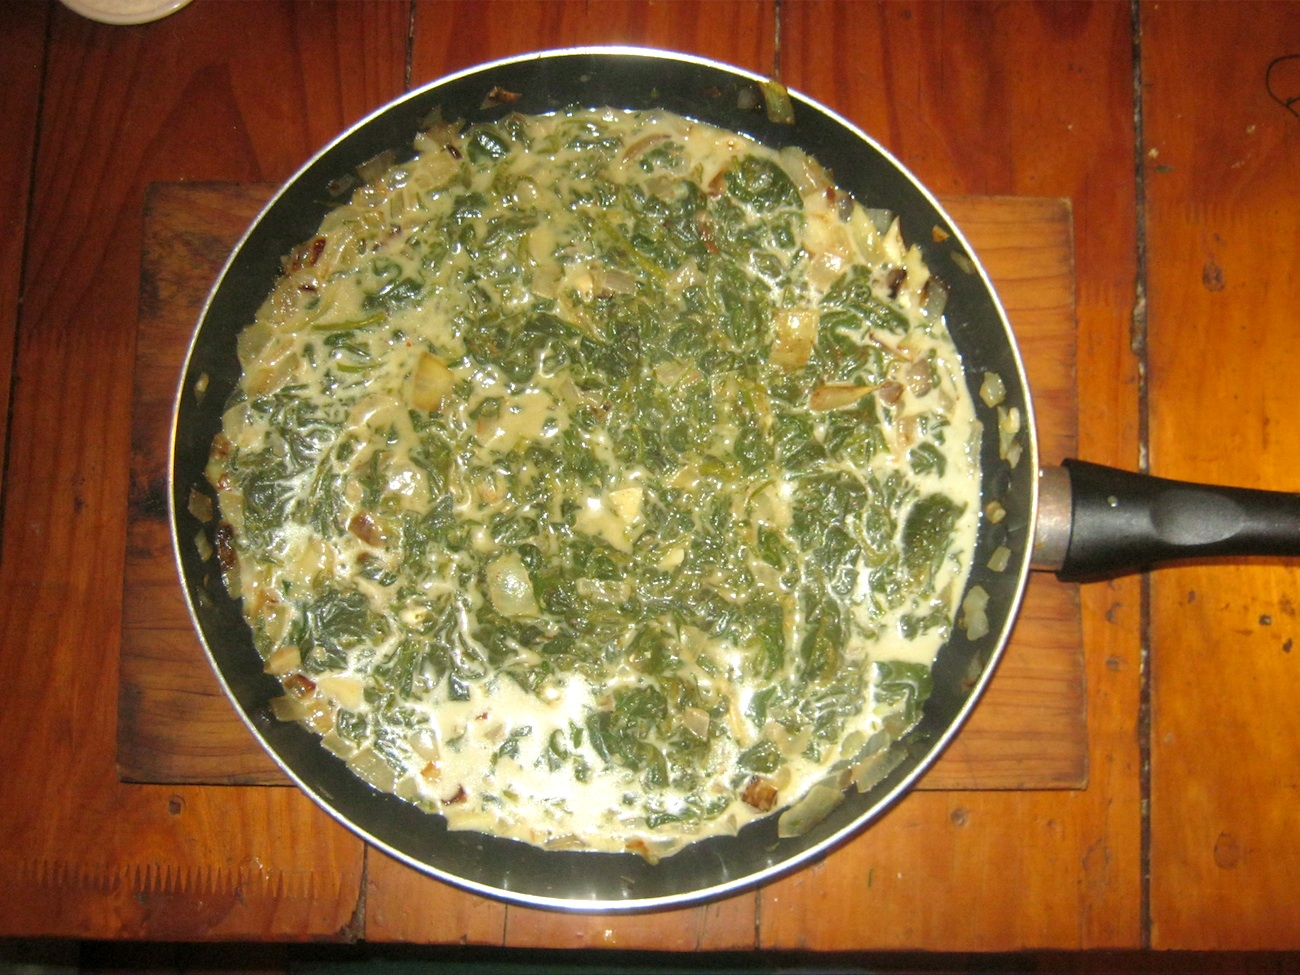 Cream spinach in a pan